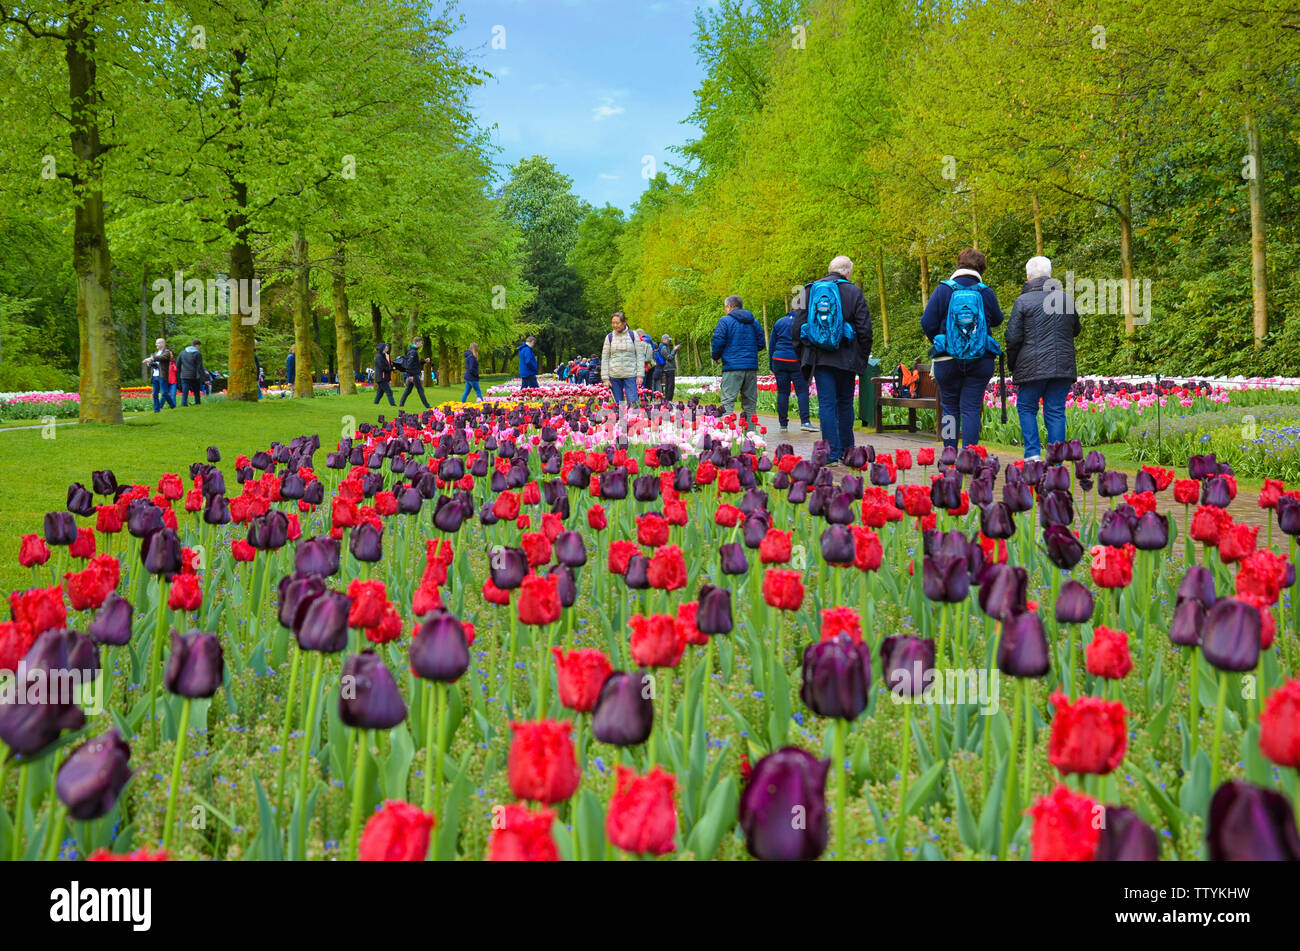 Keukenhof, Lisse, Netherlands - Apr 28th 2019: Beautiful red and dark purple tulips in famous Dutch Keukenhof gardens. Walking tourists in the background. Major tourist attraction in Holland. - Stock Image